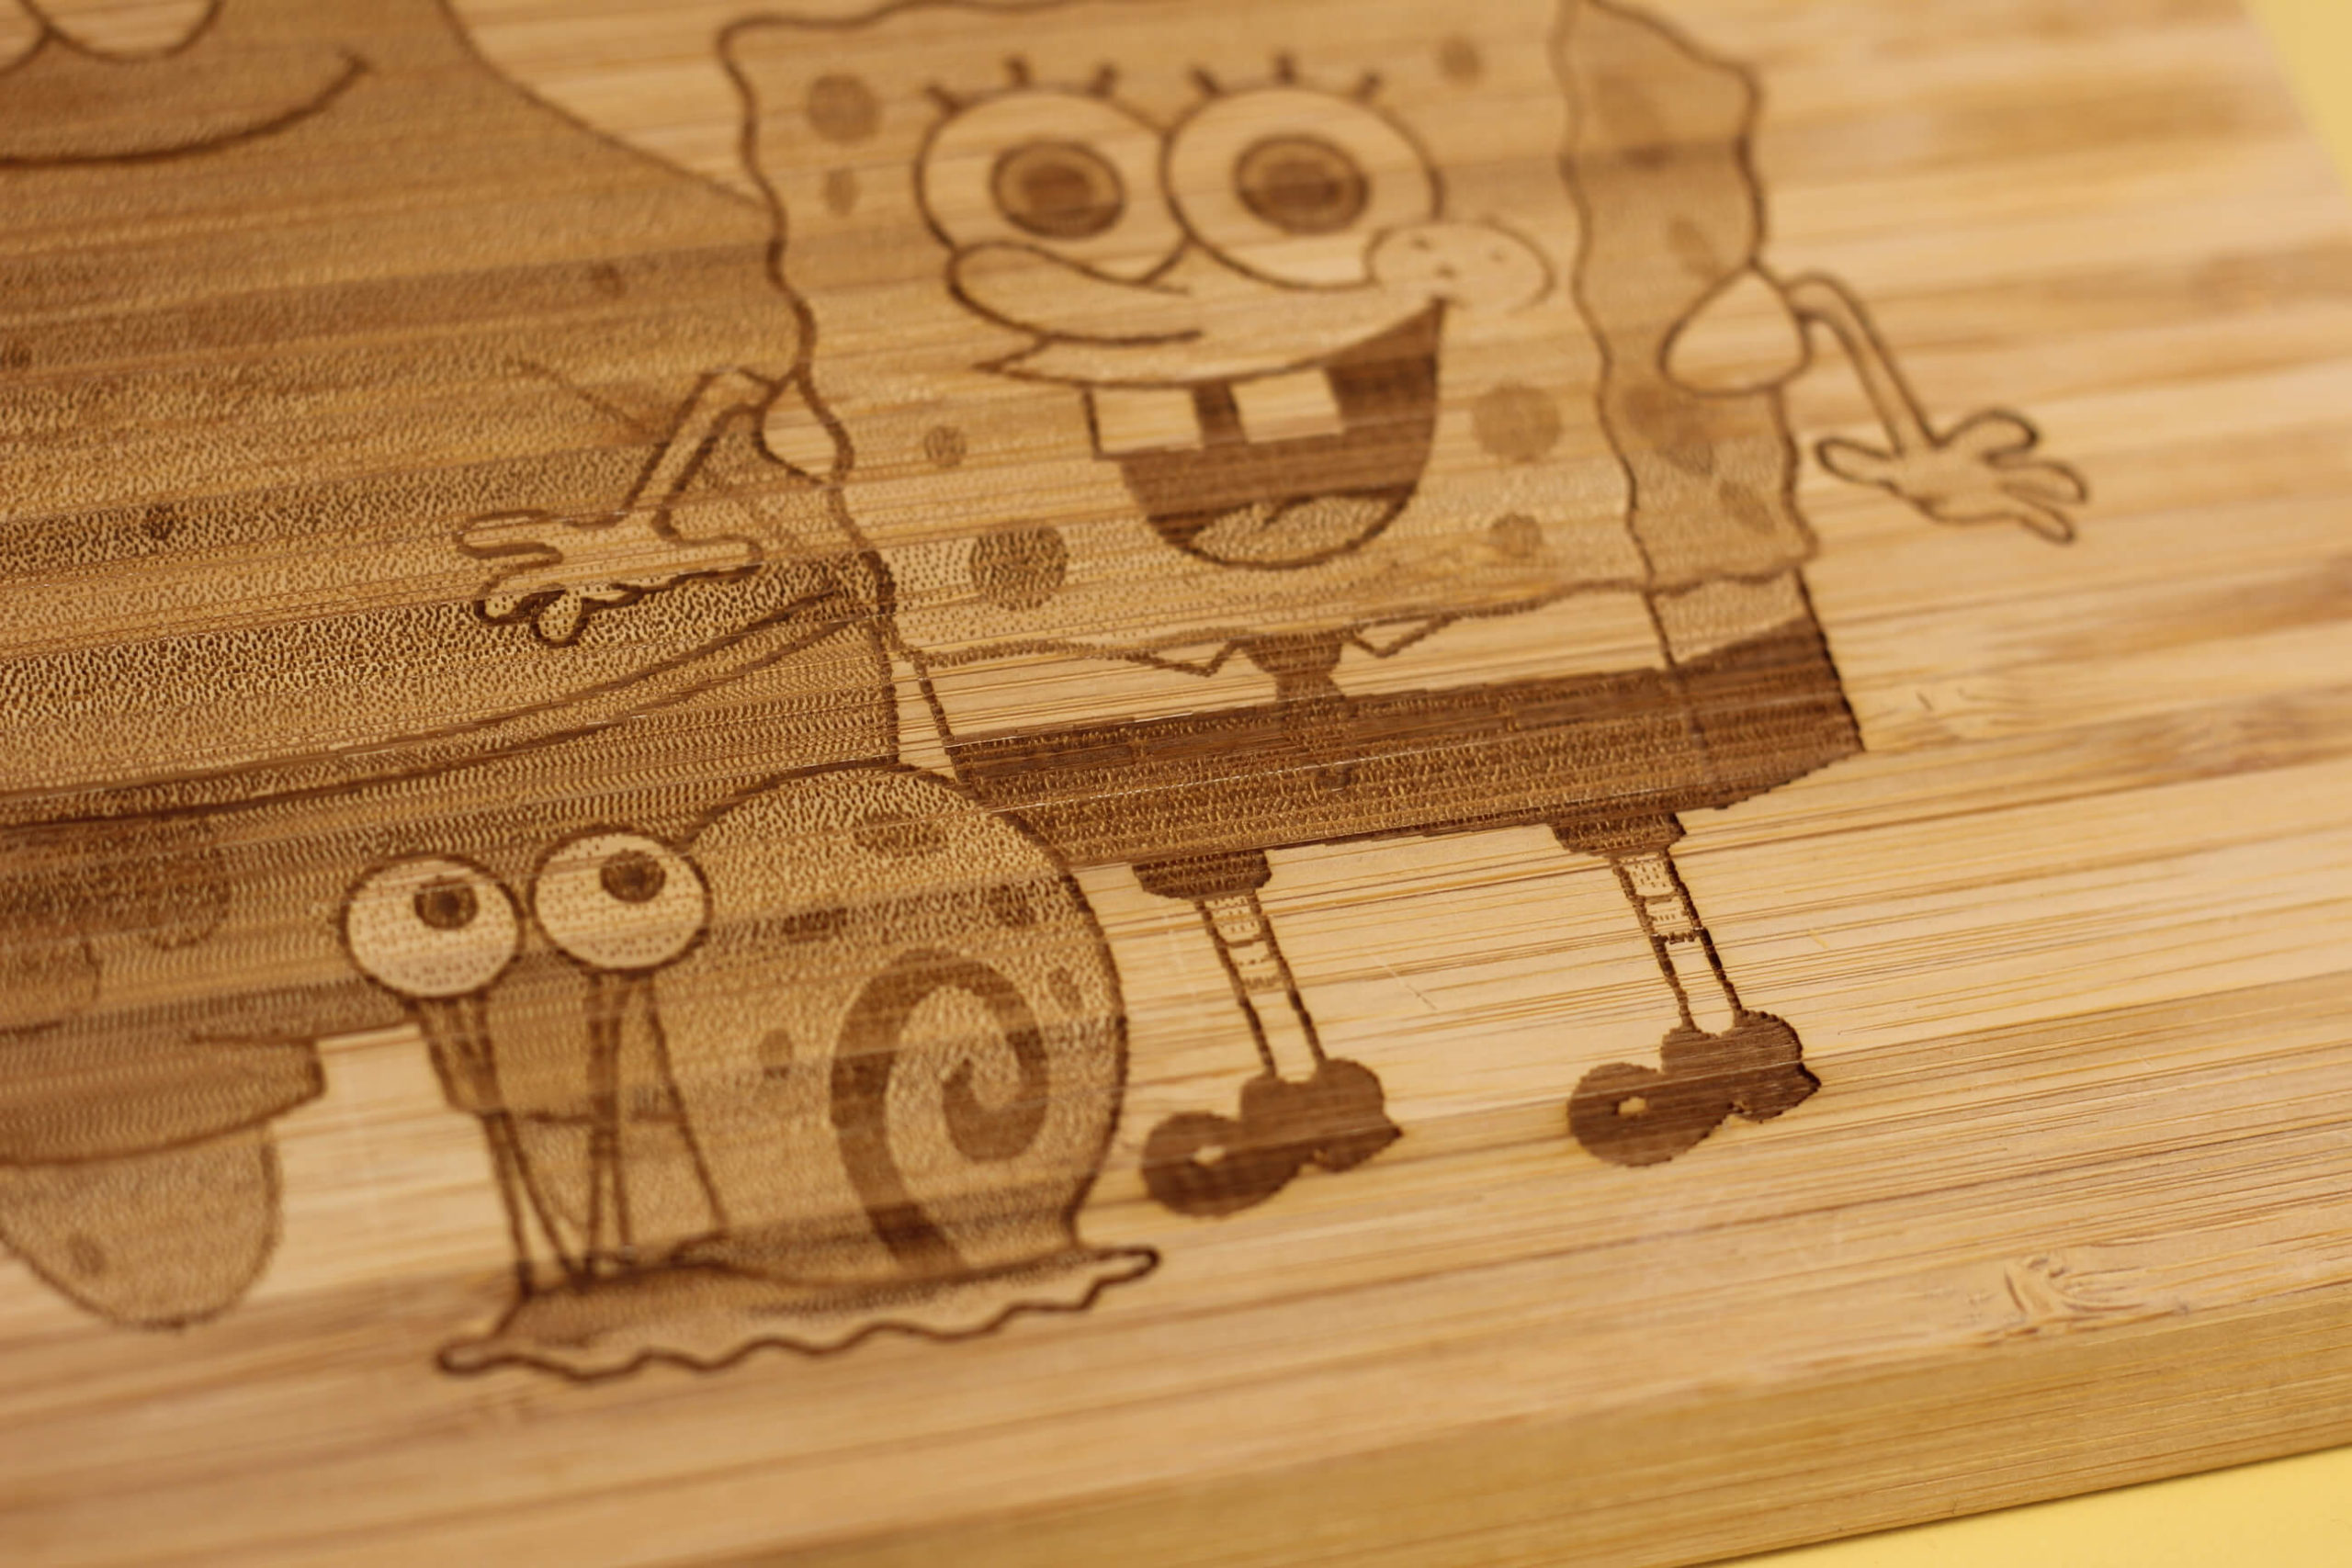 Spongebob-and-Patrick-on-ATOMSTACK-A5-3